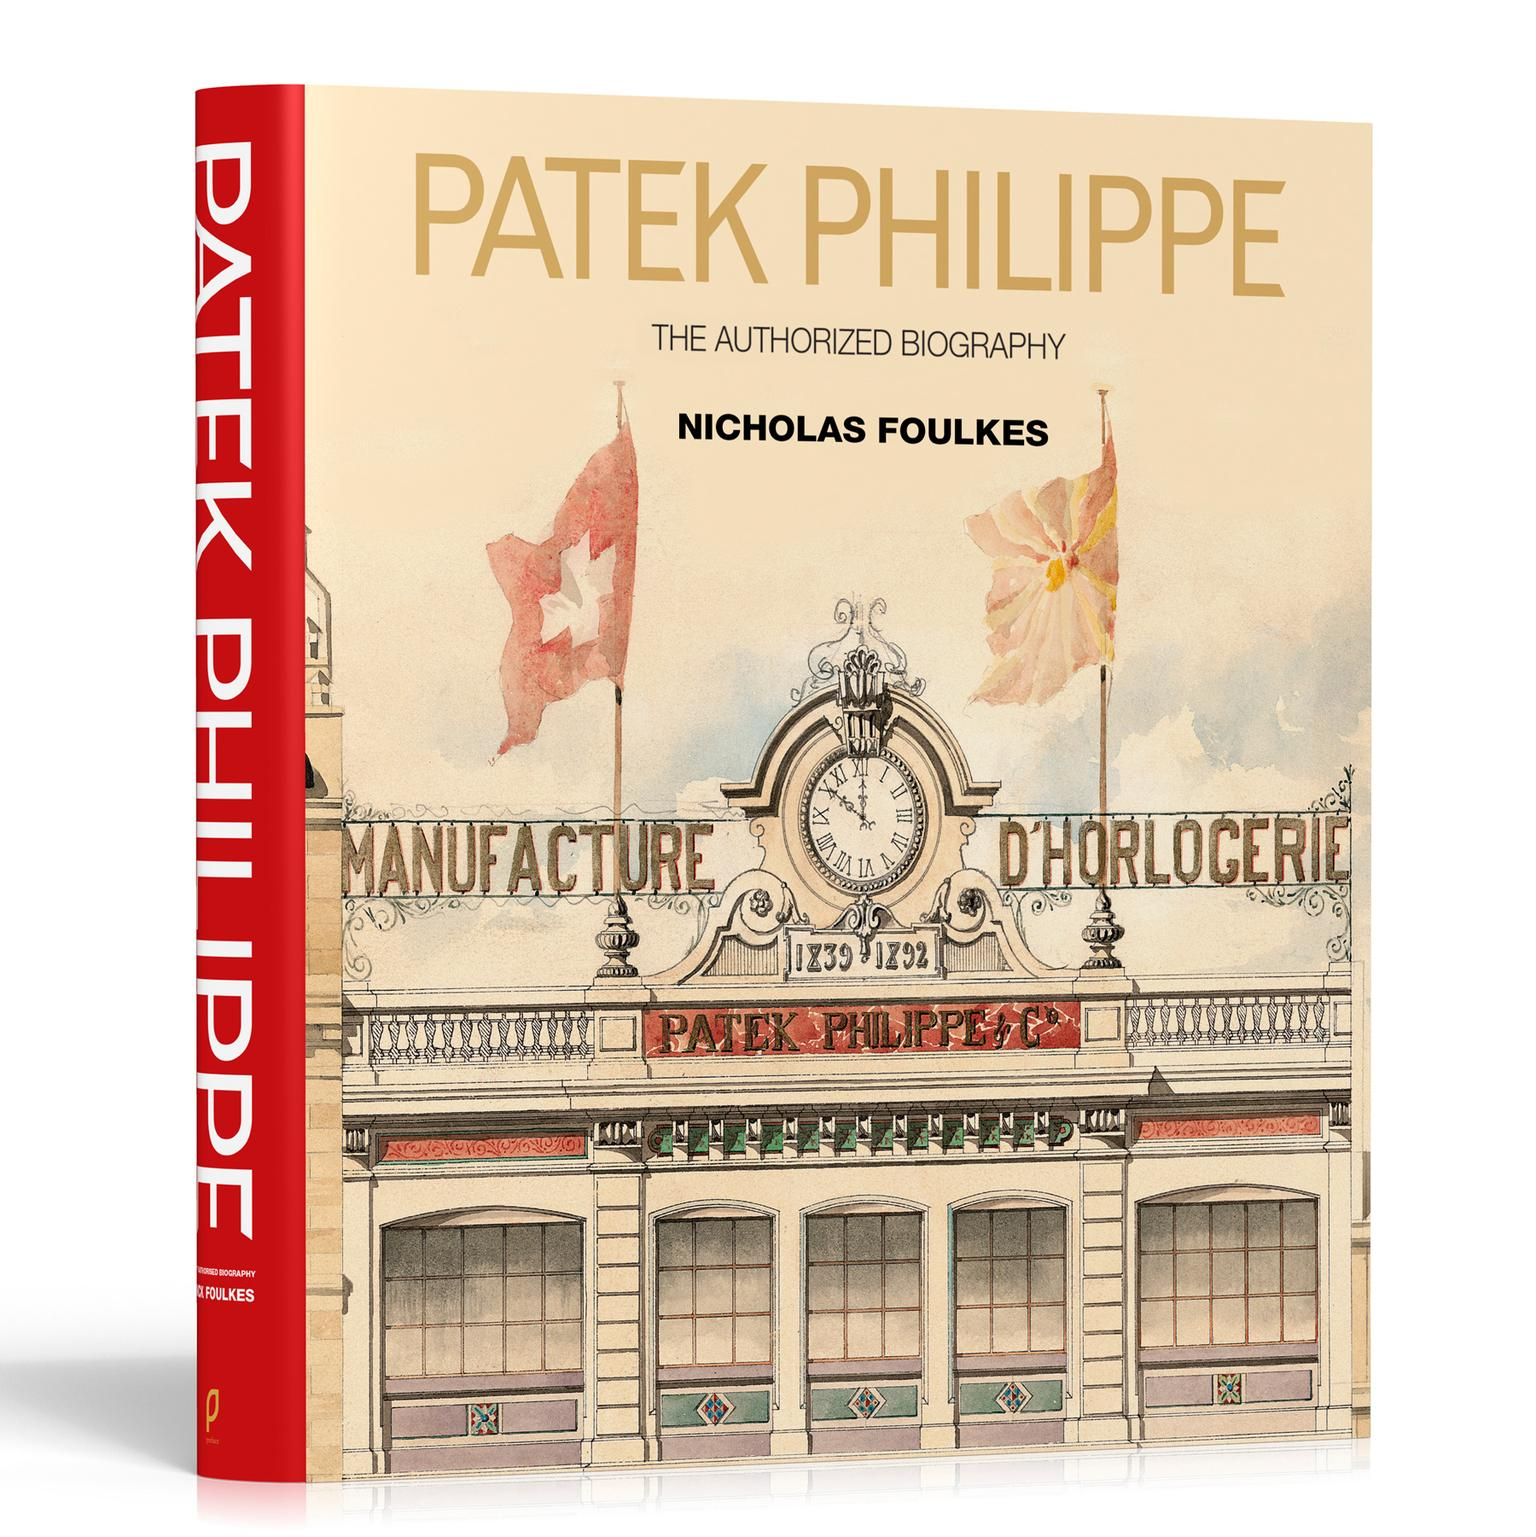 Patek Philippe The Authorized Biography by Nicholas Foulkes